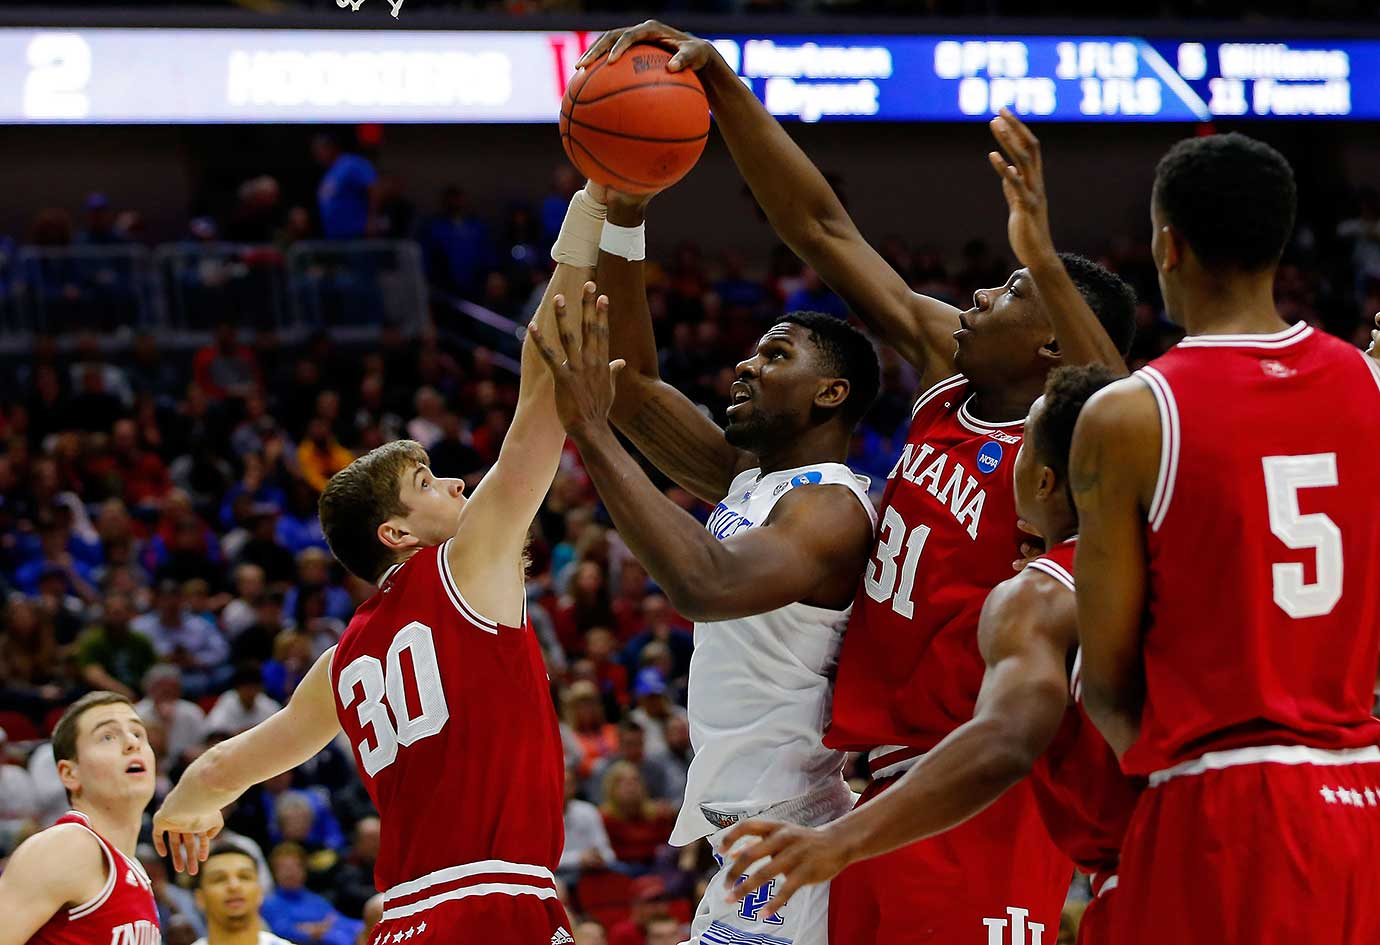 Alex Poythress of Kentucky goes up against Thomas Bryant (31) and Collin Hartman (30) of Indiana.